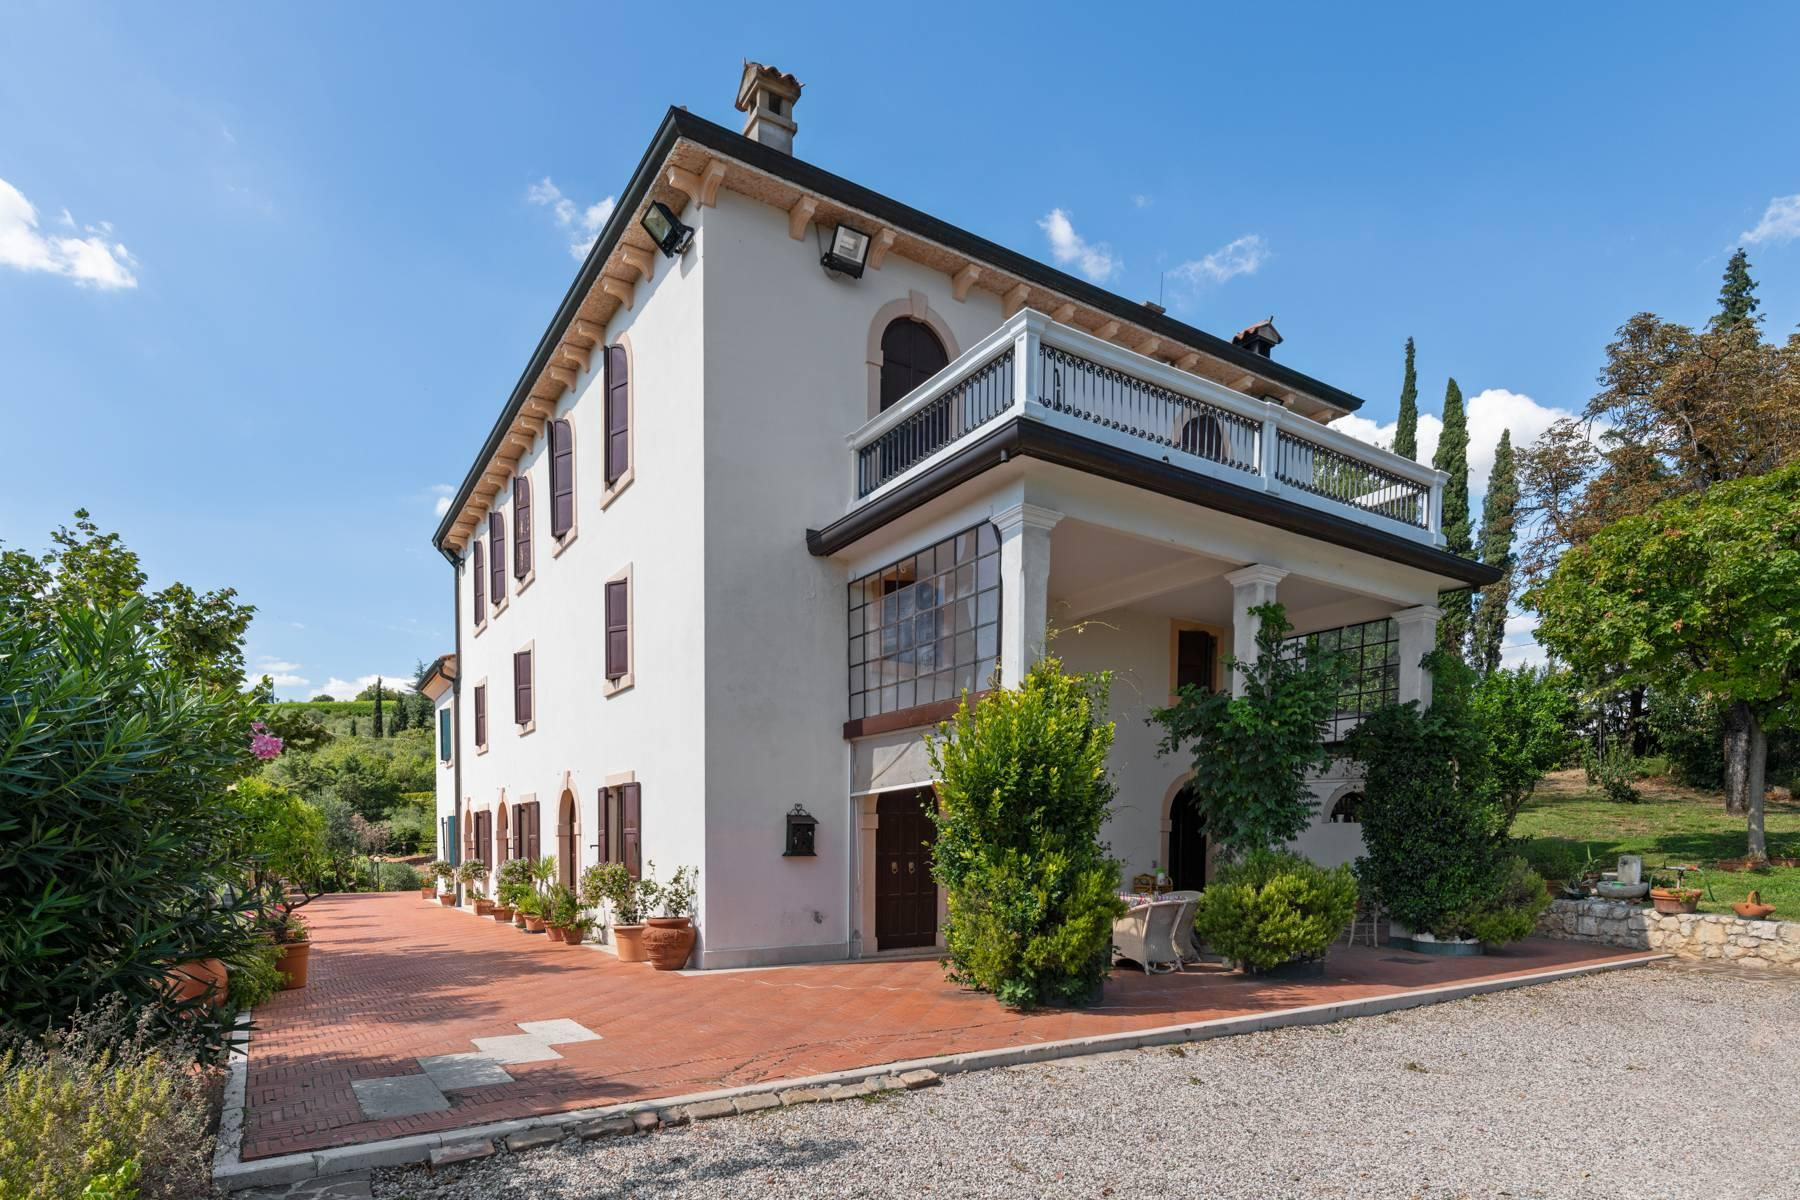 Historic country villa with swimming pool, tennis court and estate on the hills of Verona - 2